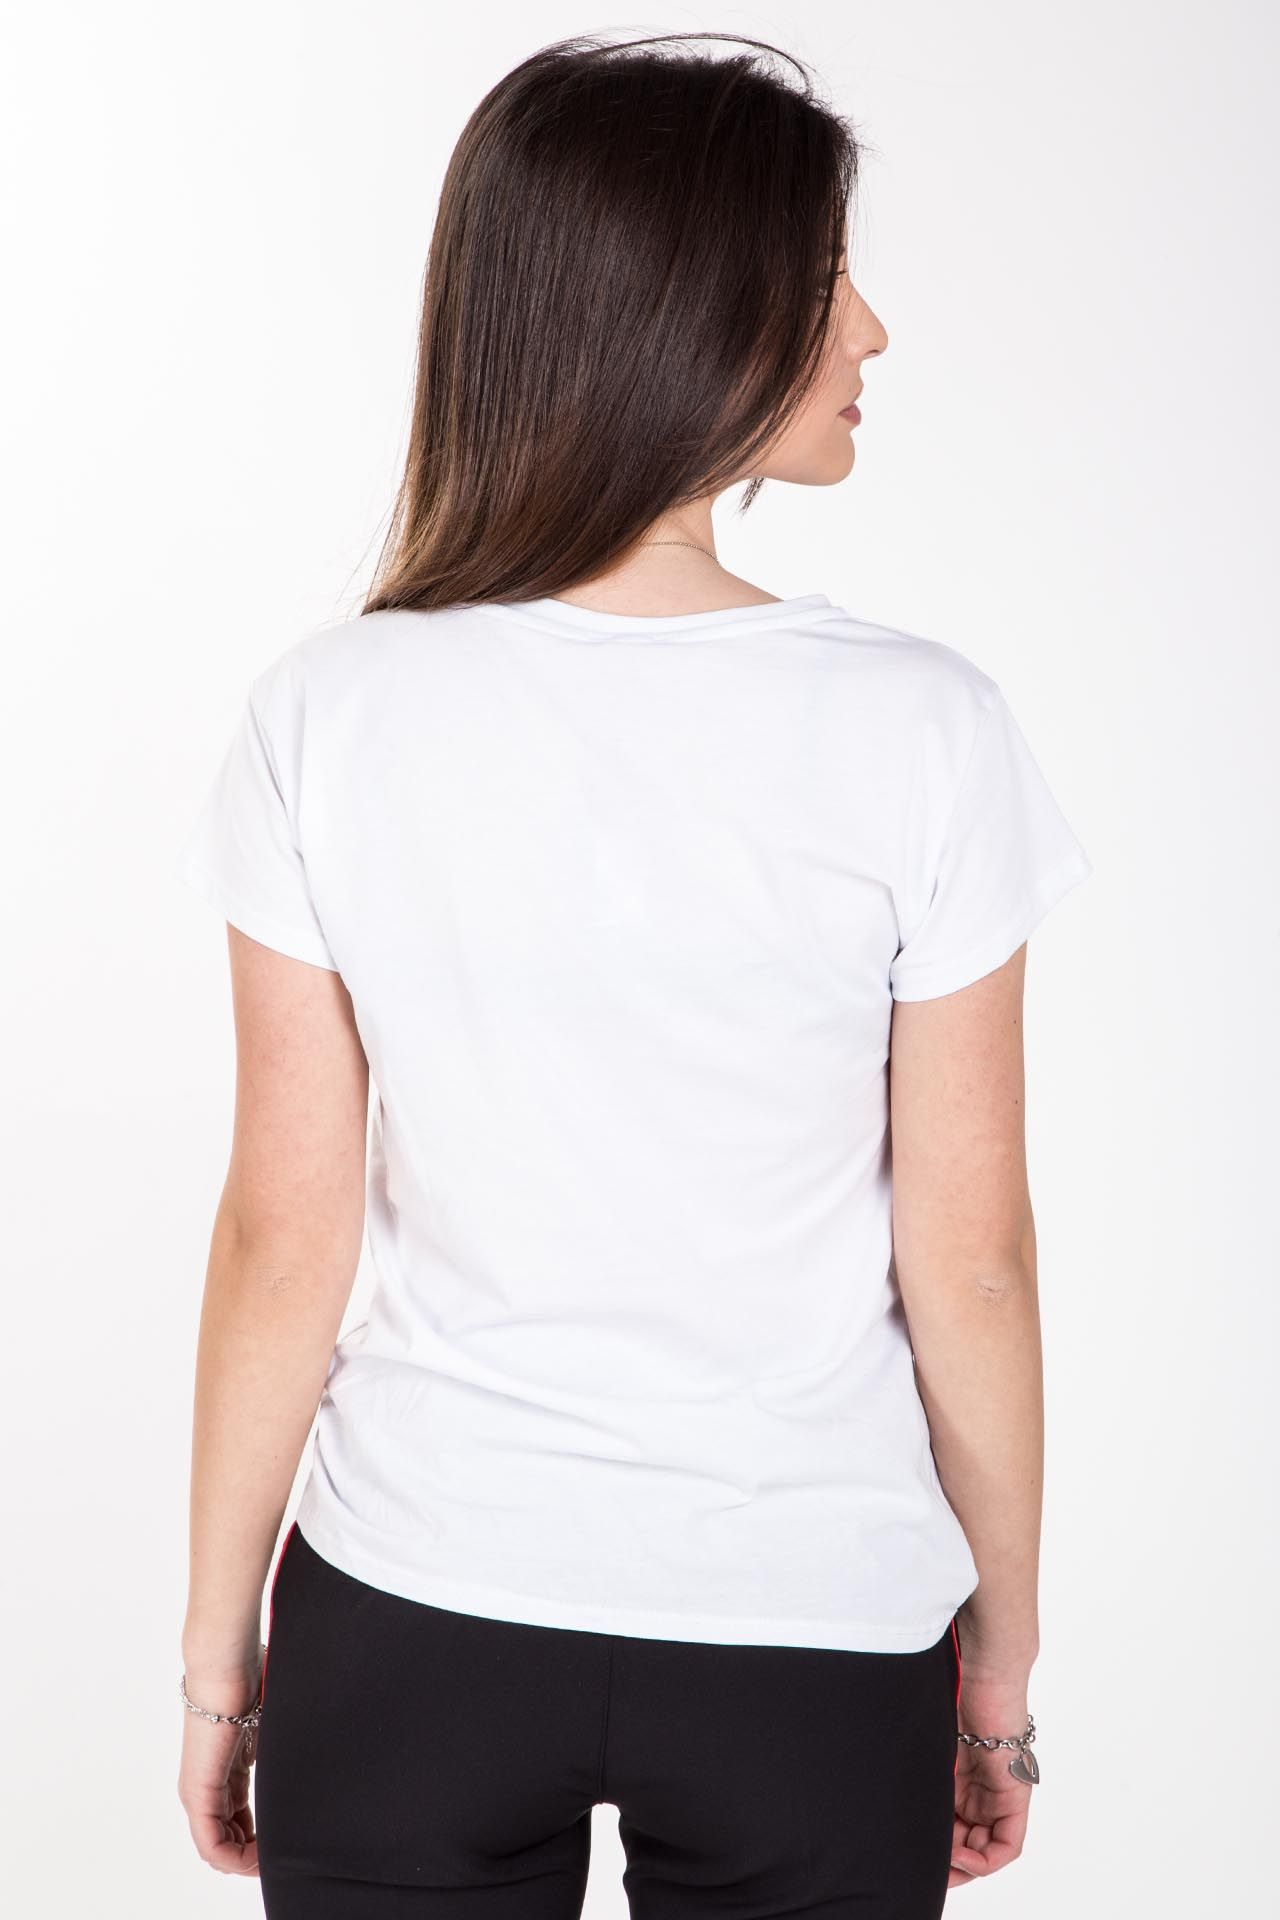 T-shirt con stampa - bianca con stampa rossa Brend